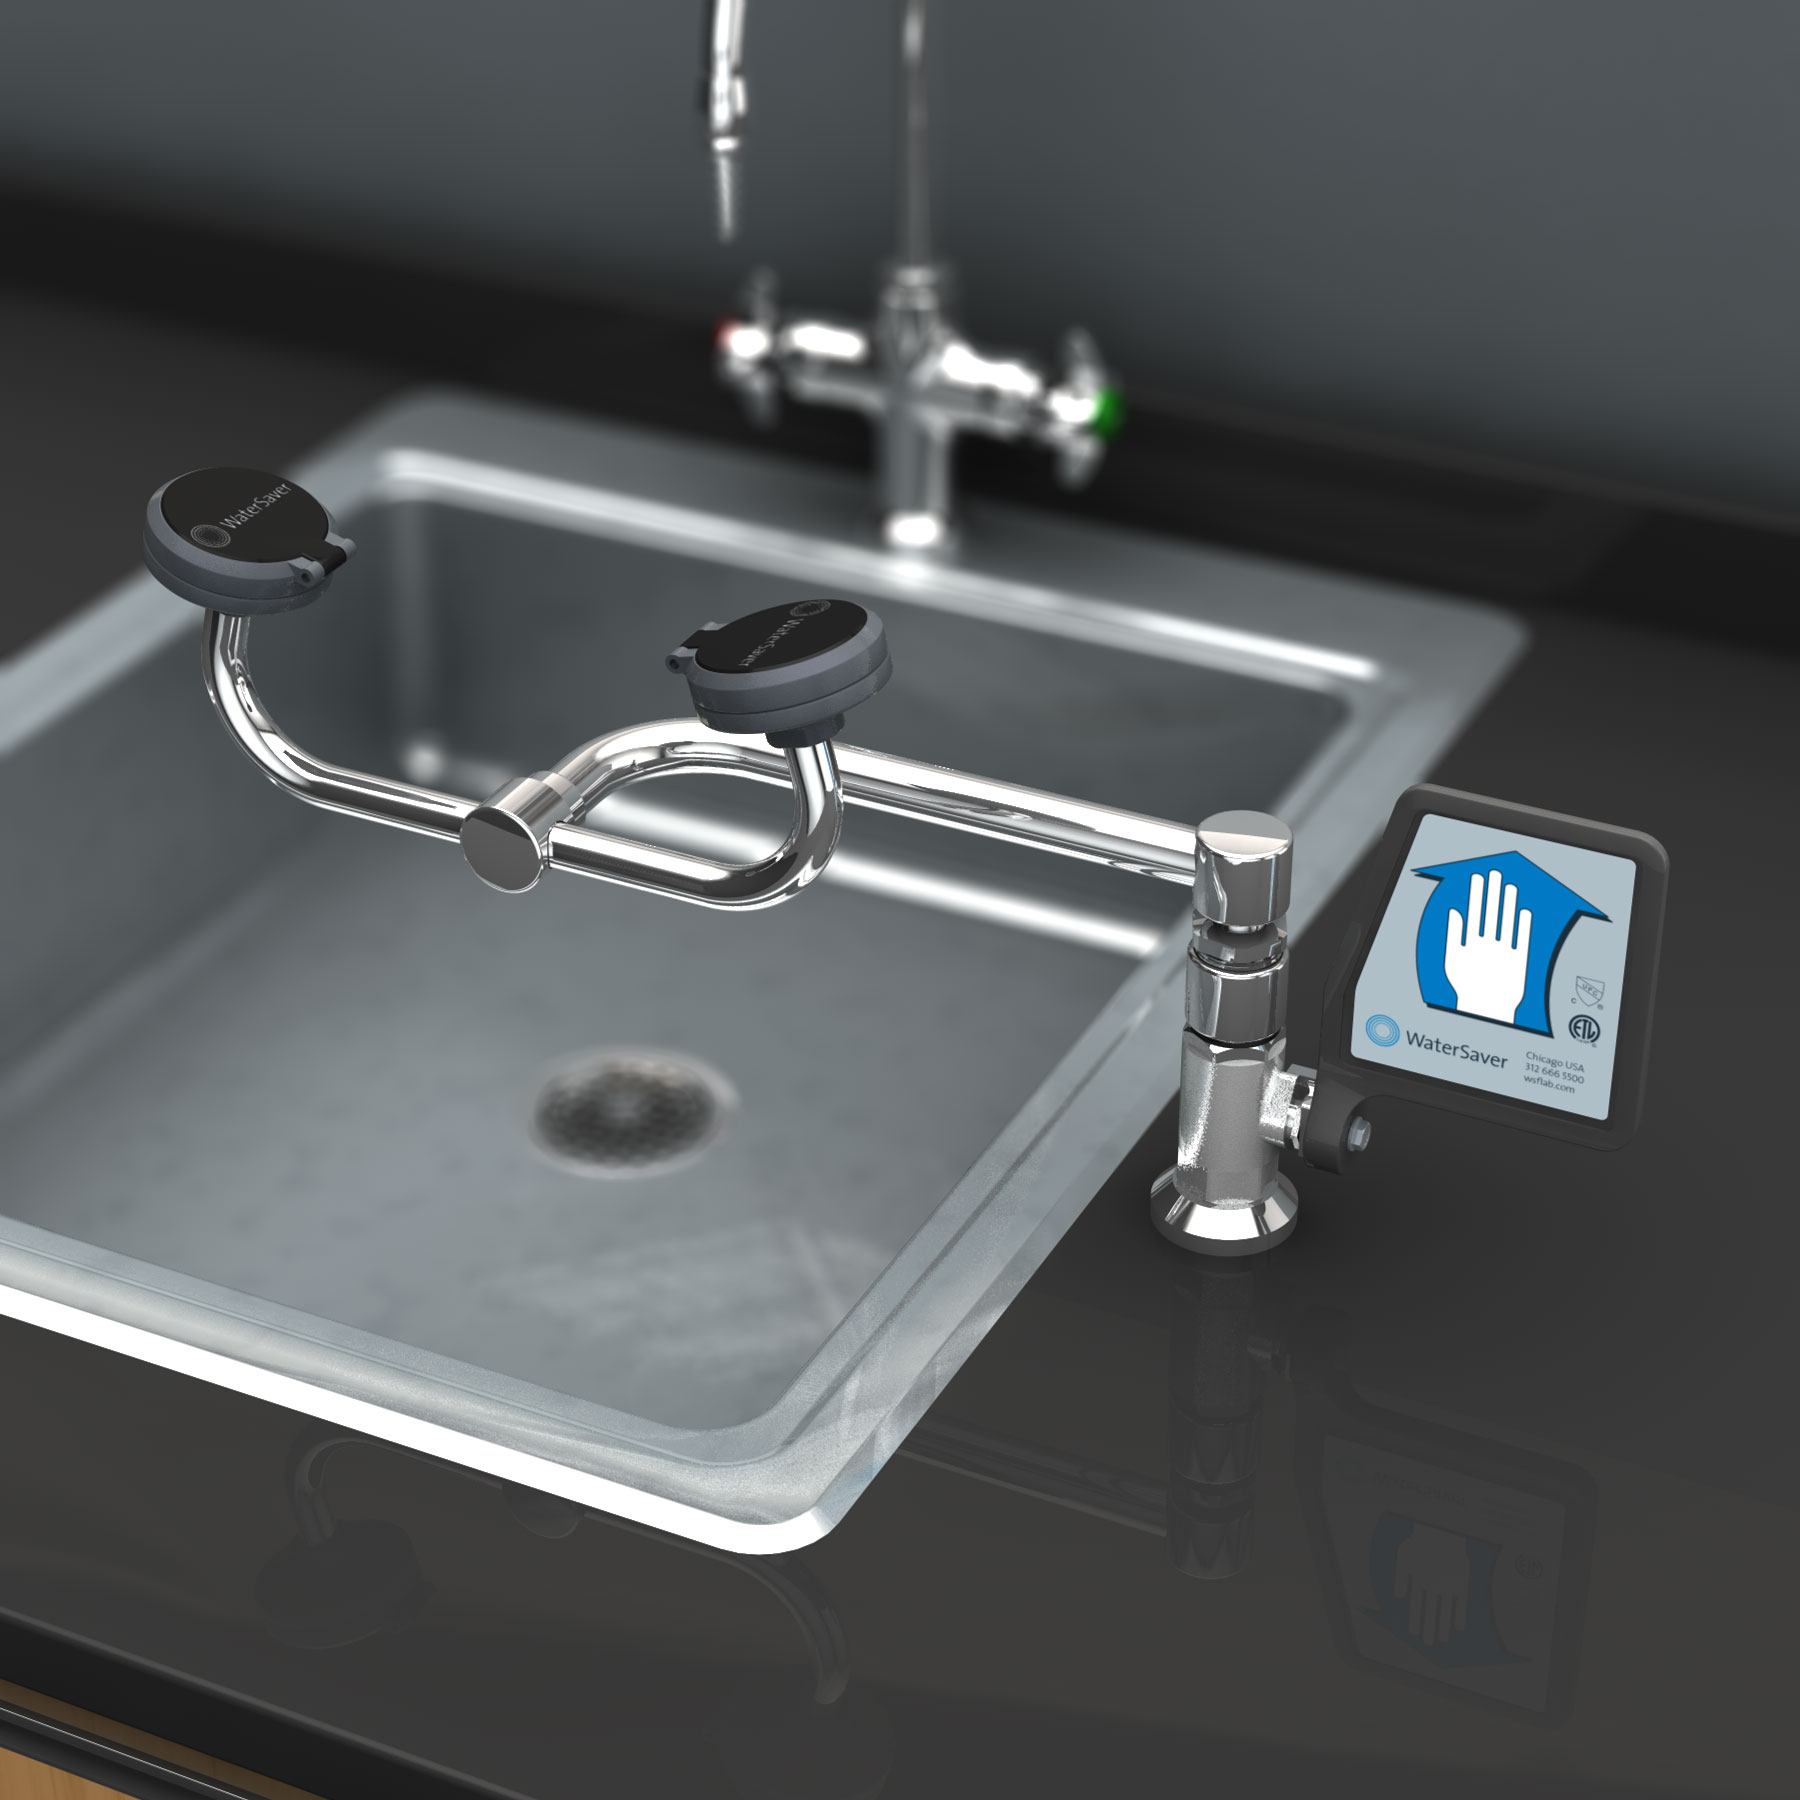 FE775 – WaterSaver Faucet Co.